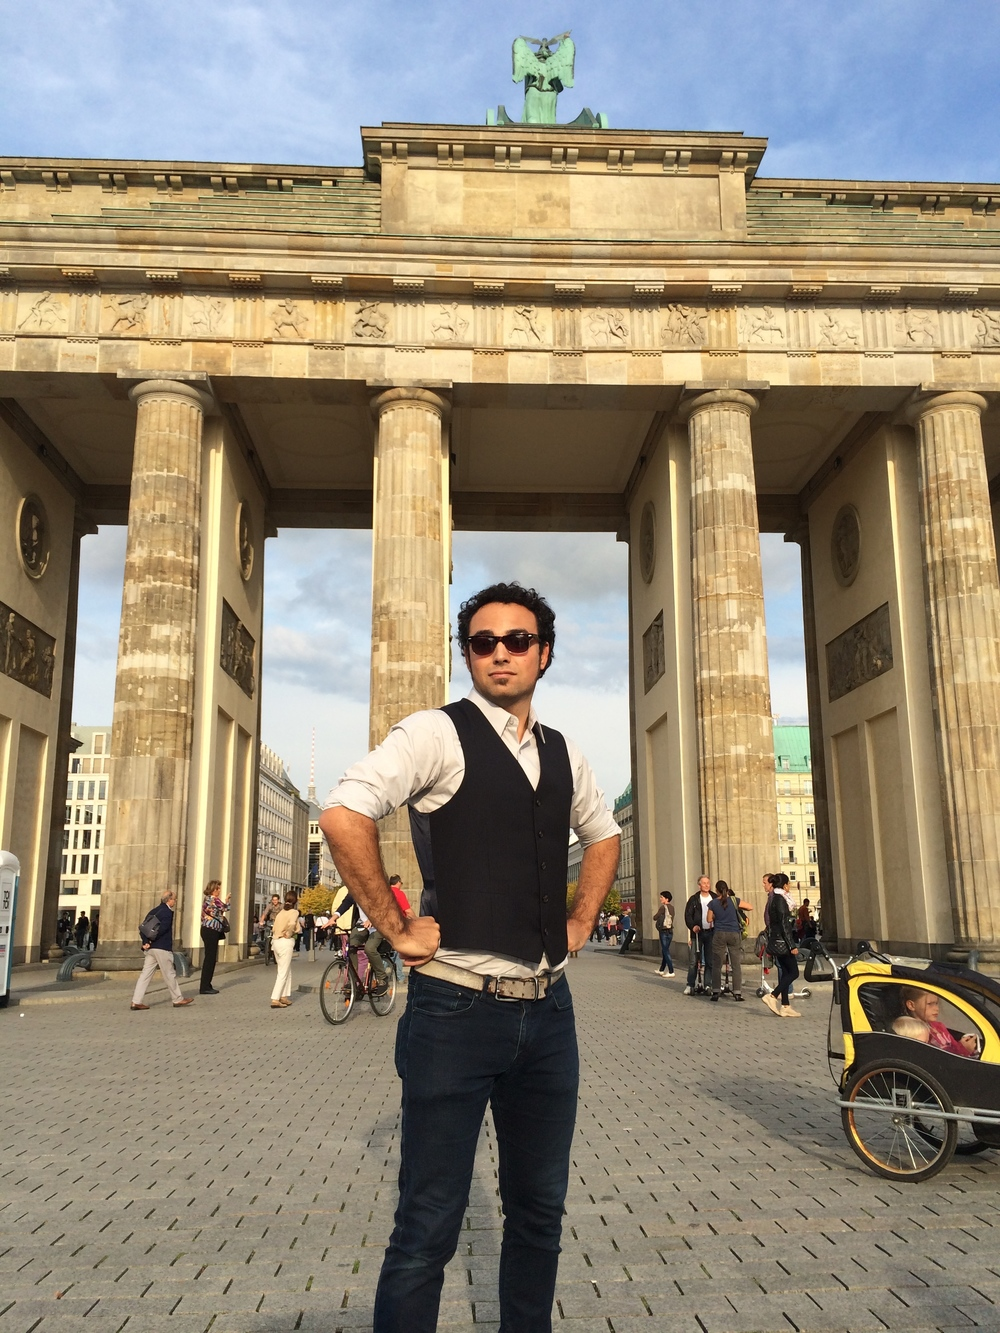 Paulie stirkes a pose in Berlin